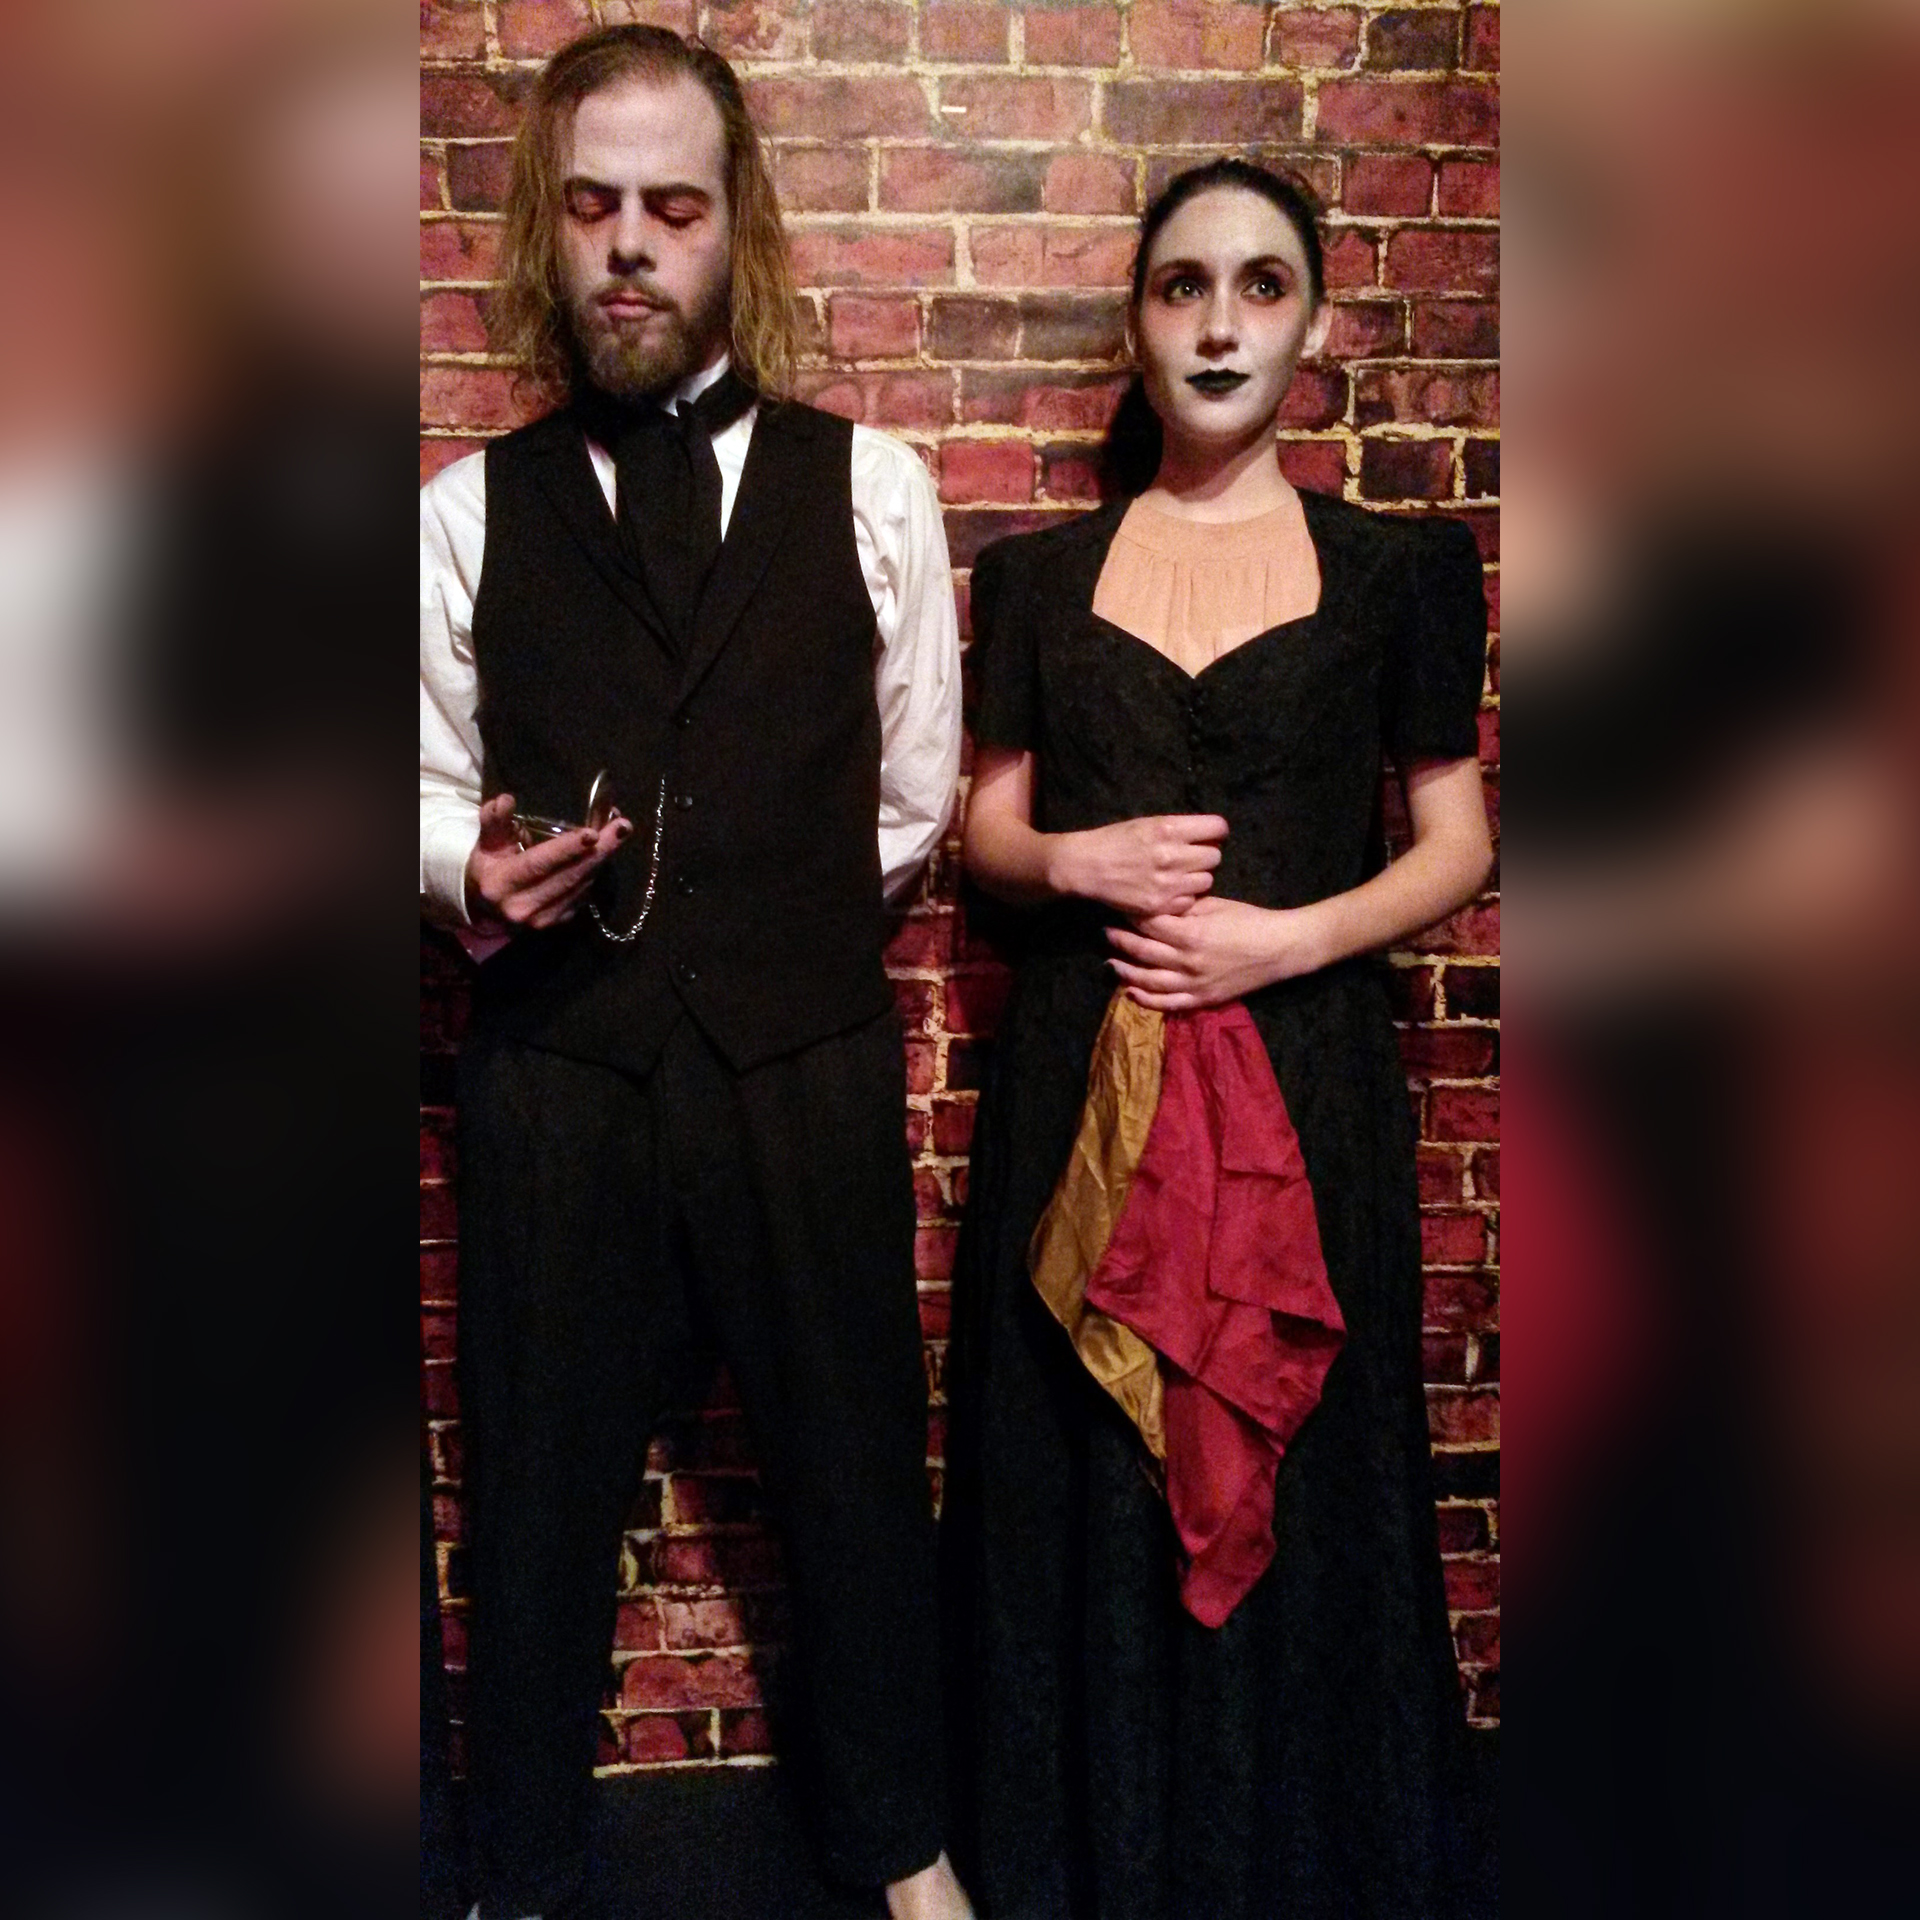 Jason Britt and Michelle Danyn pass the time in  Blood Alley 3  before culminating in a disturbing climax to the scene. (Image courtesy of Zombie Joe's Underground Theatre.)